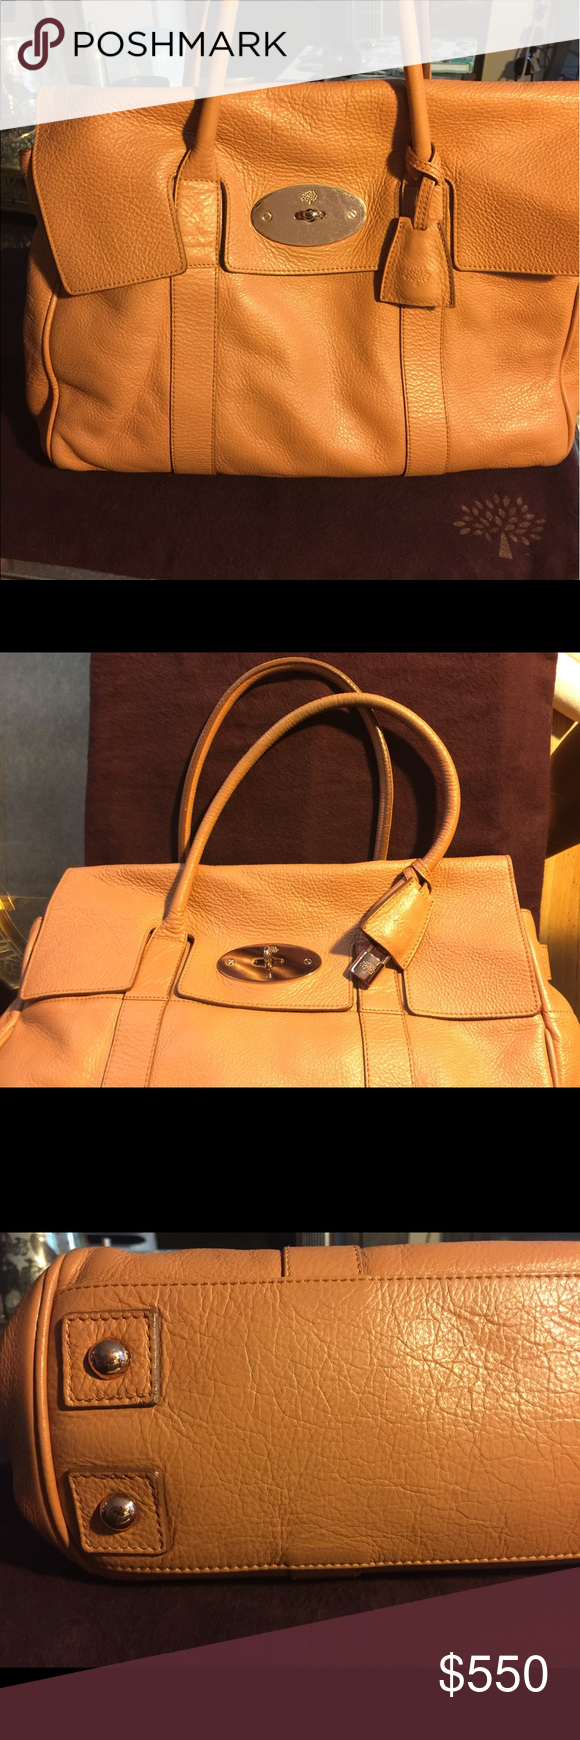 8295874963 Mulberry Bayswater Camel Rose Gold Hardware Bag 100% Authenticity  Guaranteed. Mulberry Bayswater bag purchased